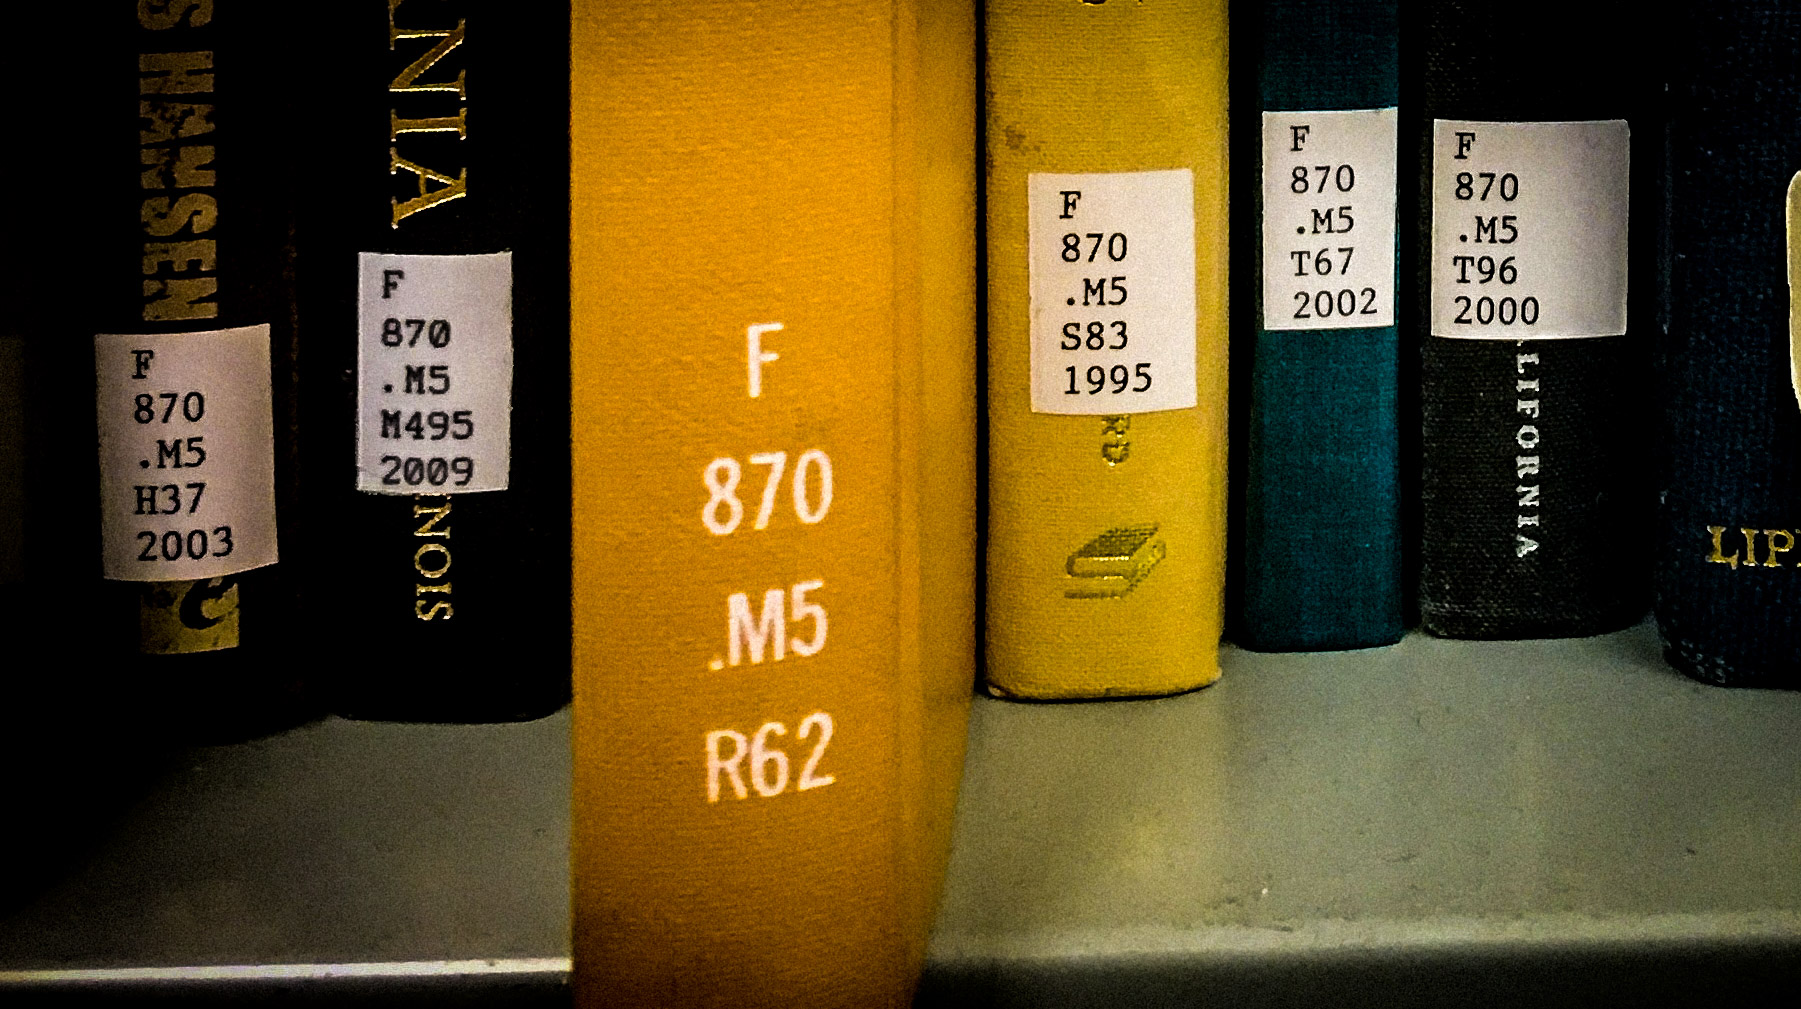 The book on the shelf wil be forund between f 870.m5 m427 and f 870.m5 s83 1995